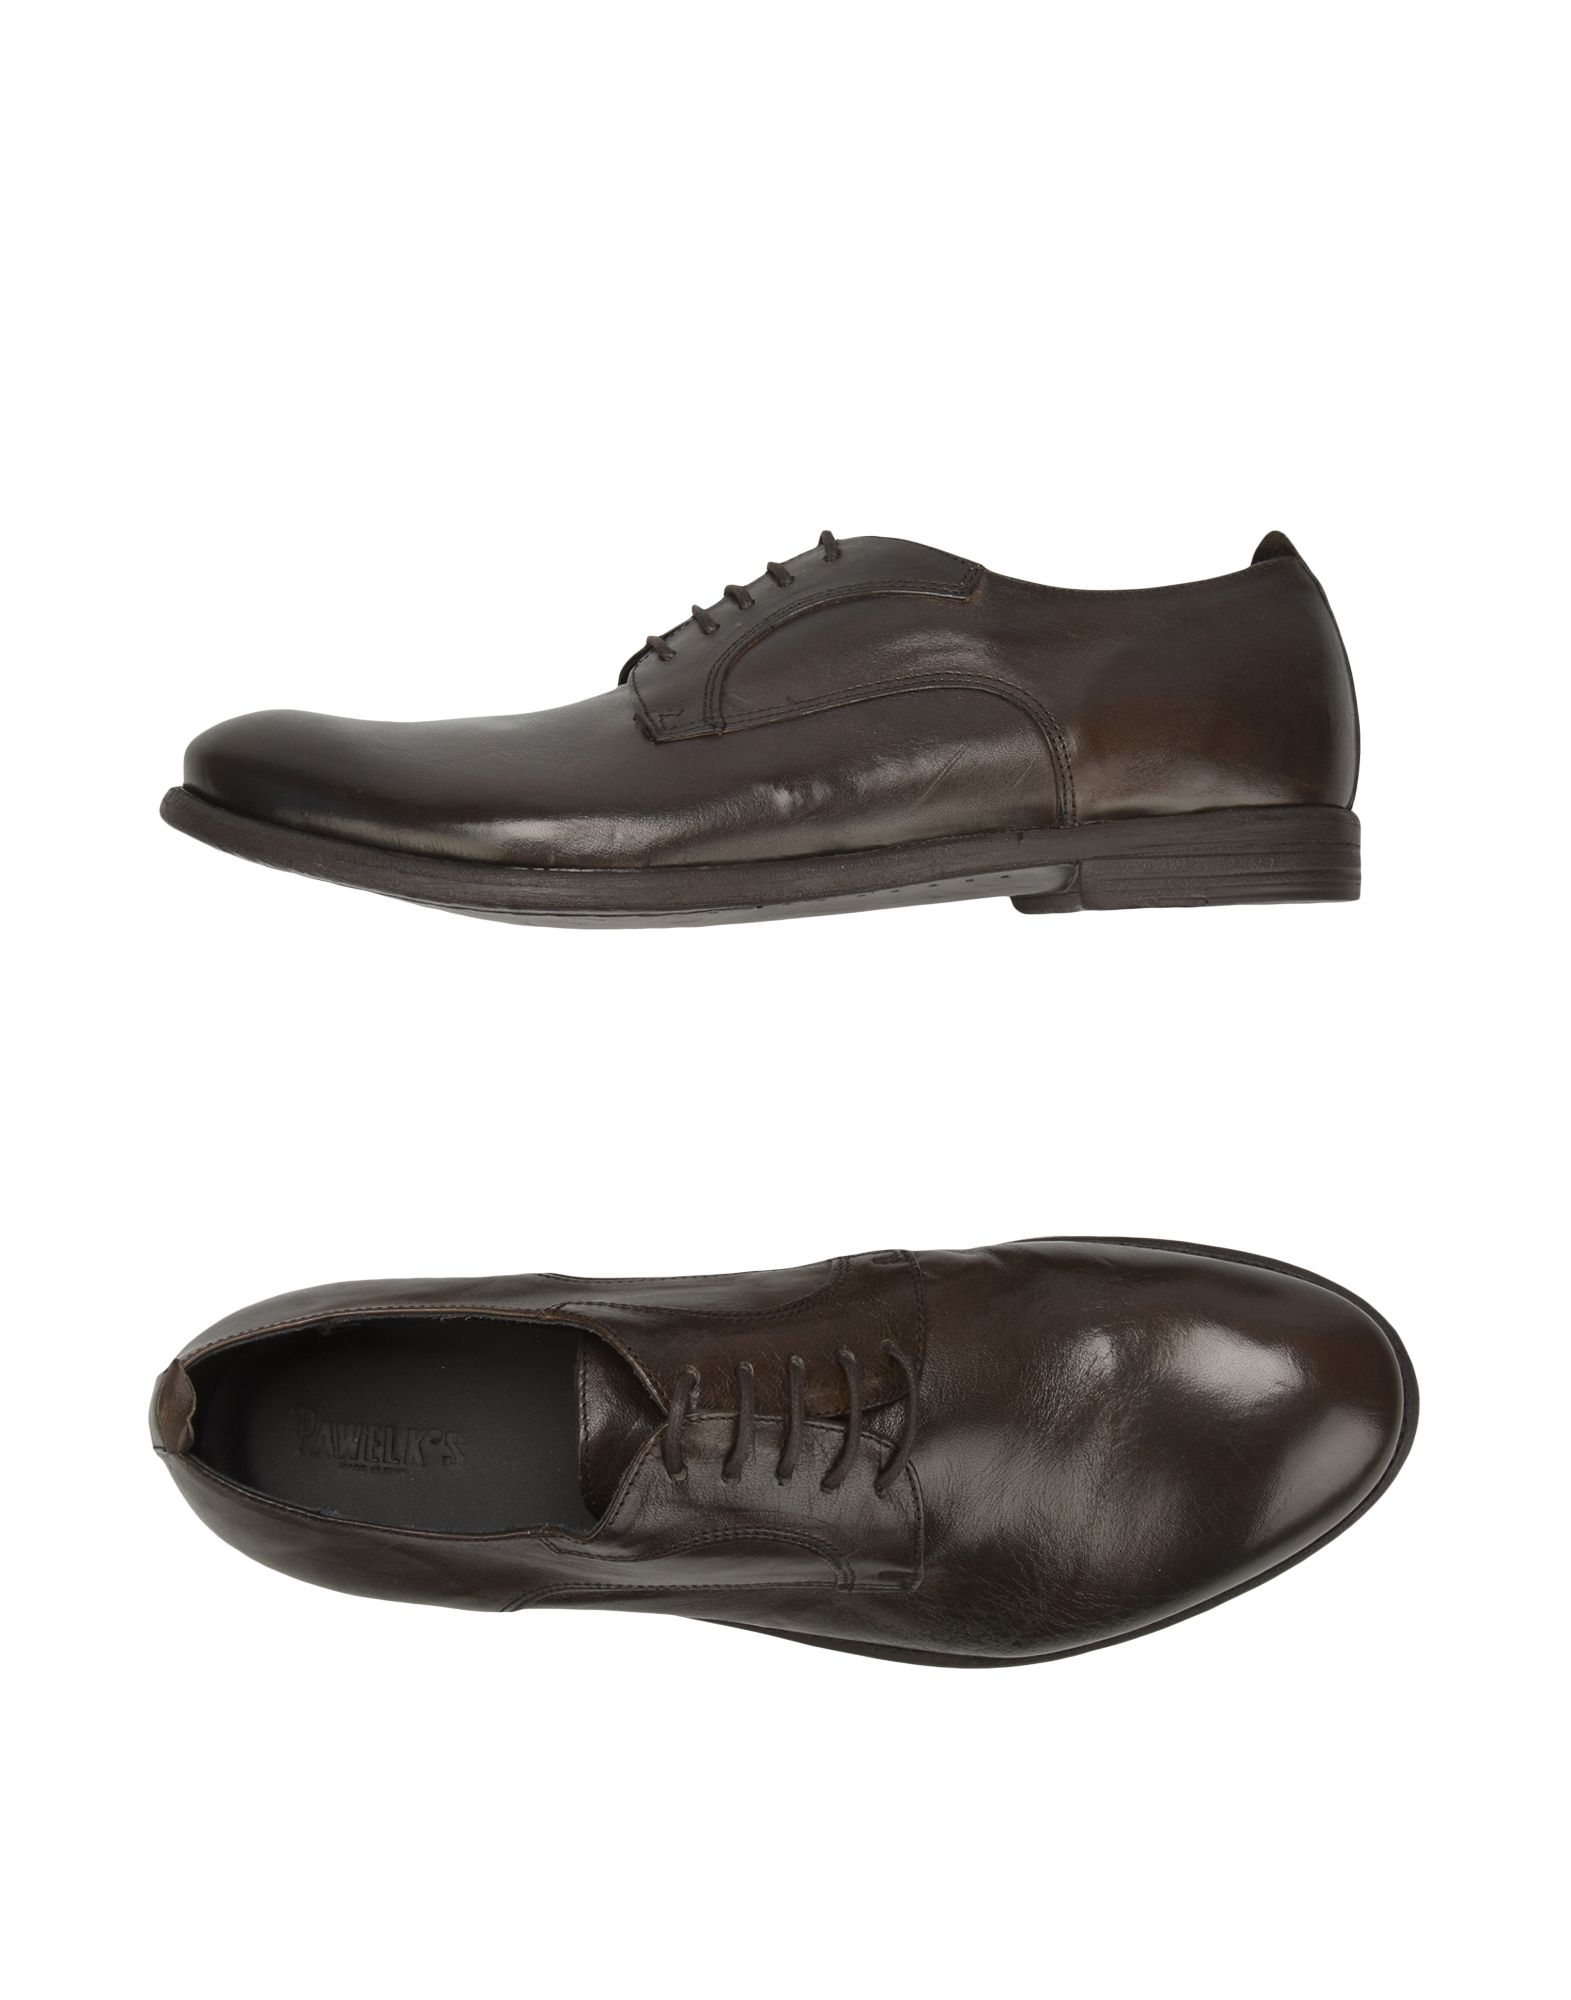 PAWELK'S Laced Shoes in Cocoa